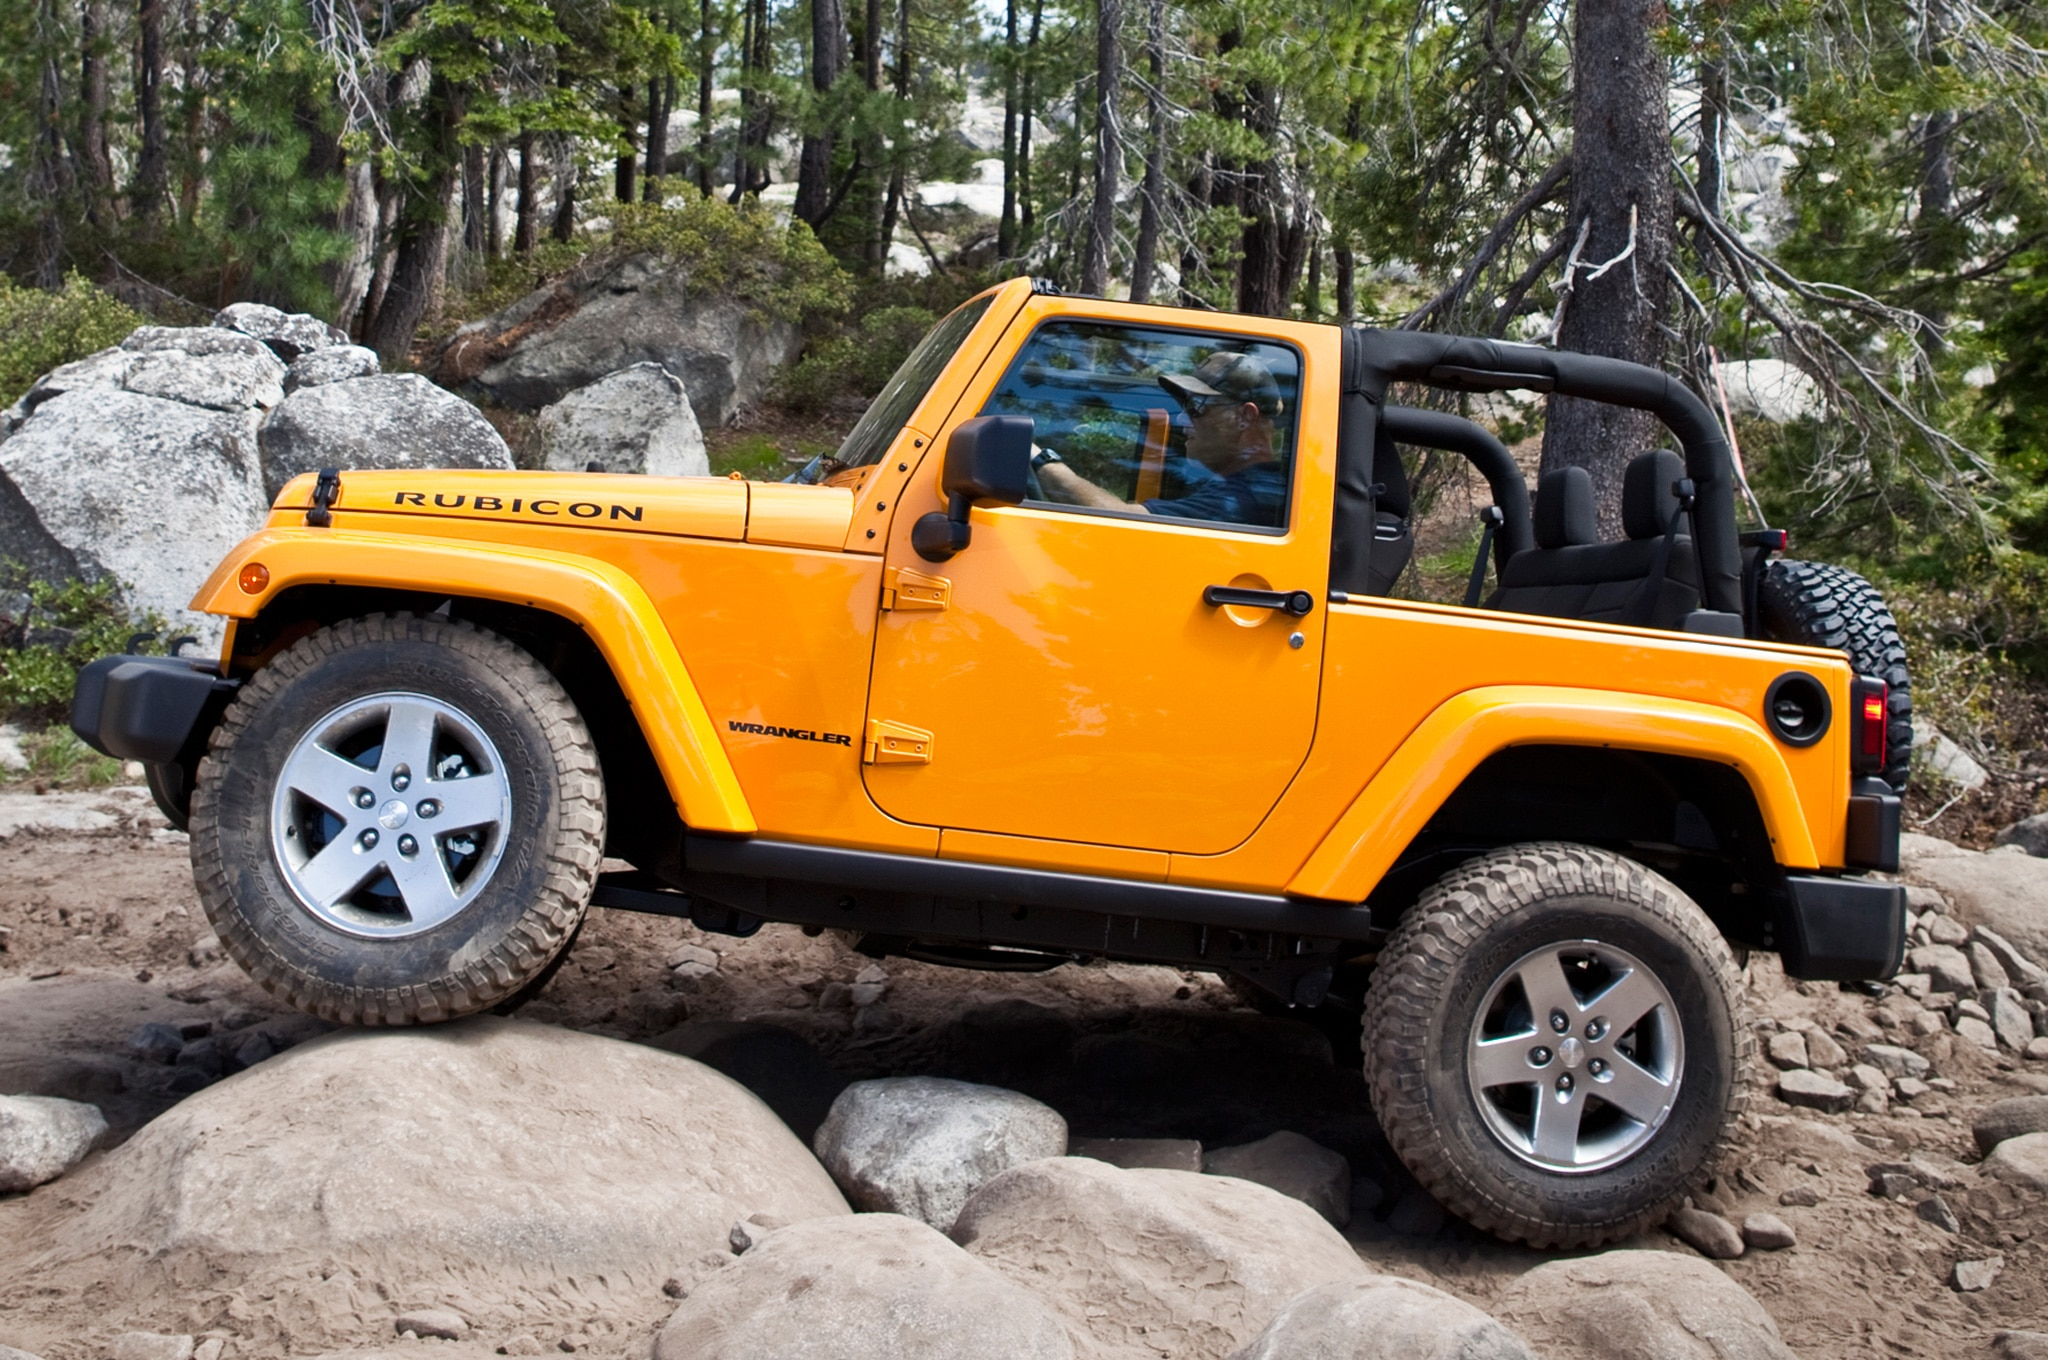 4wd vs. awd: there's a difference